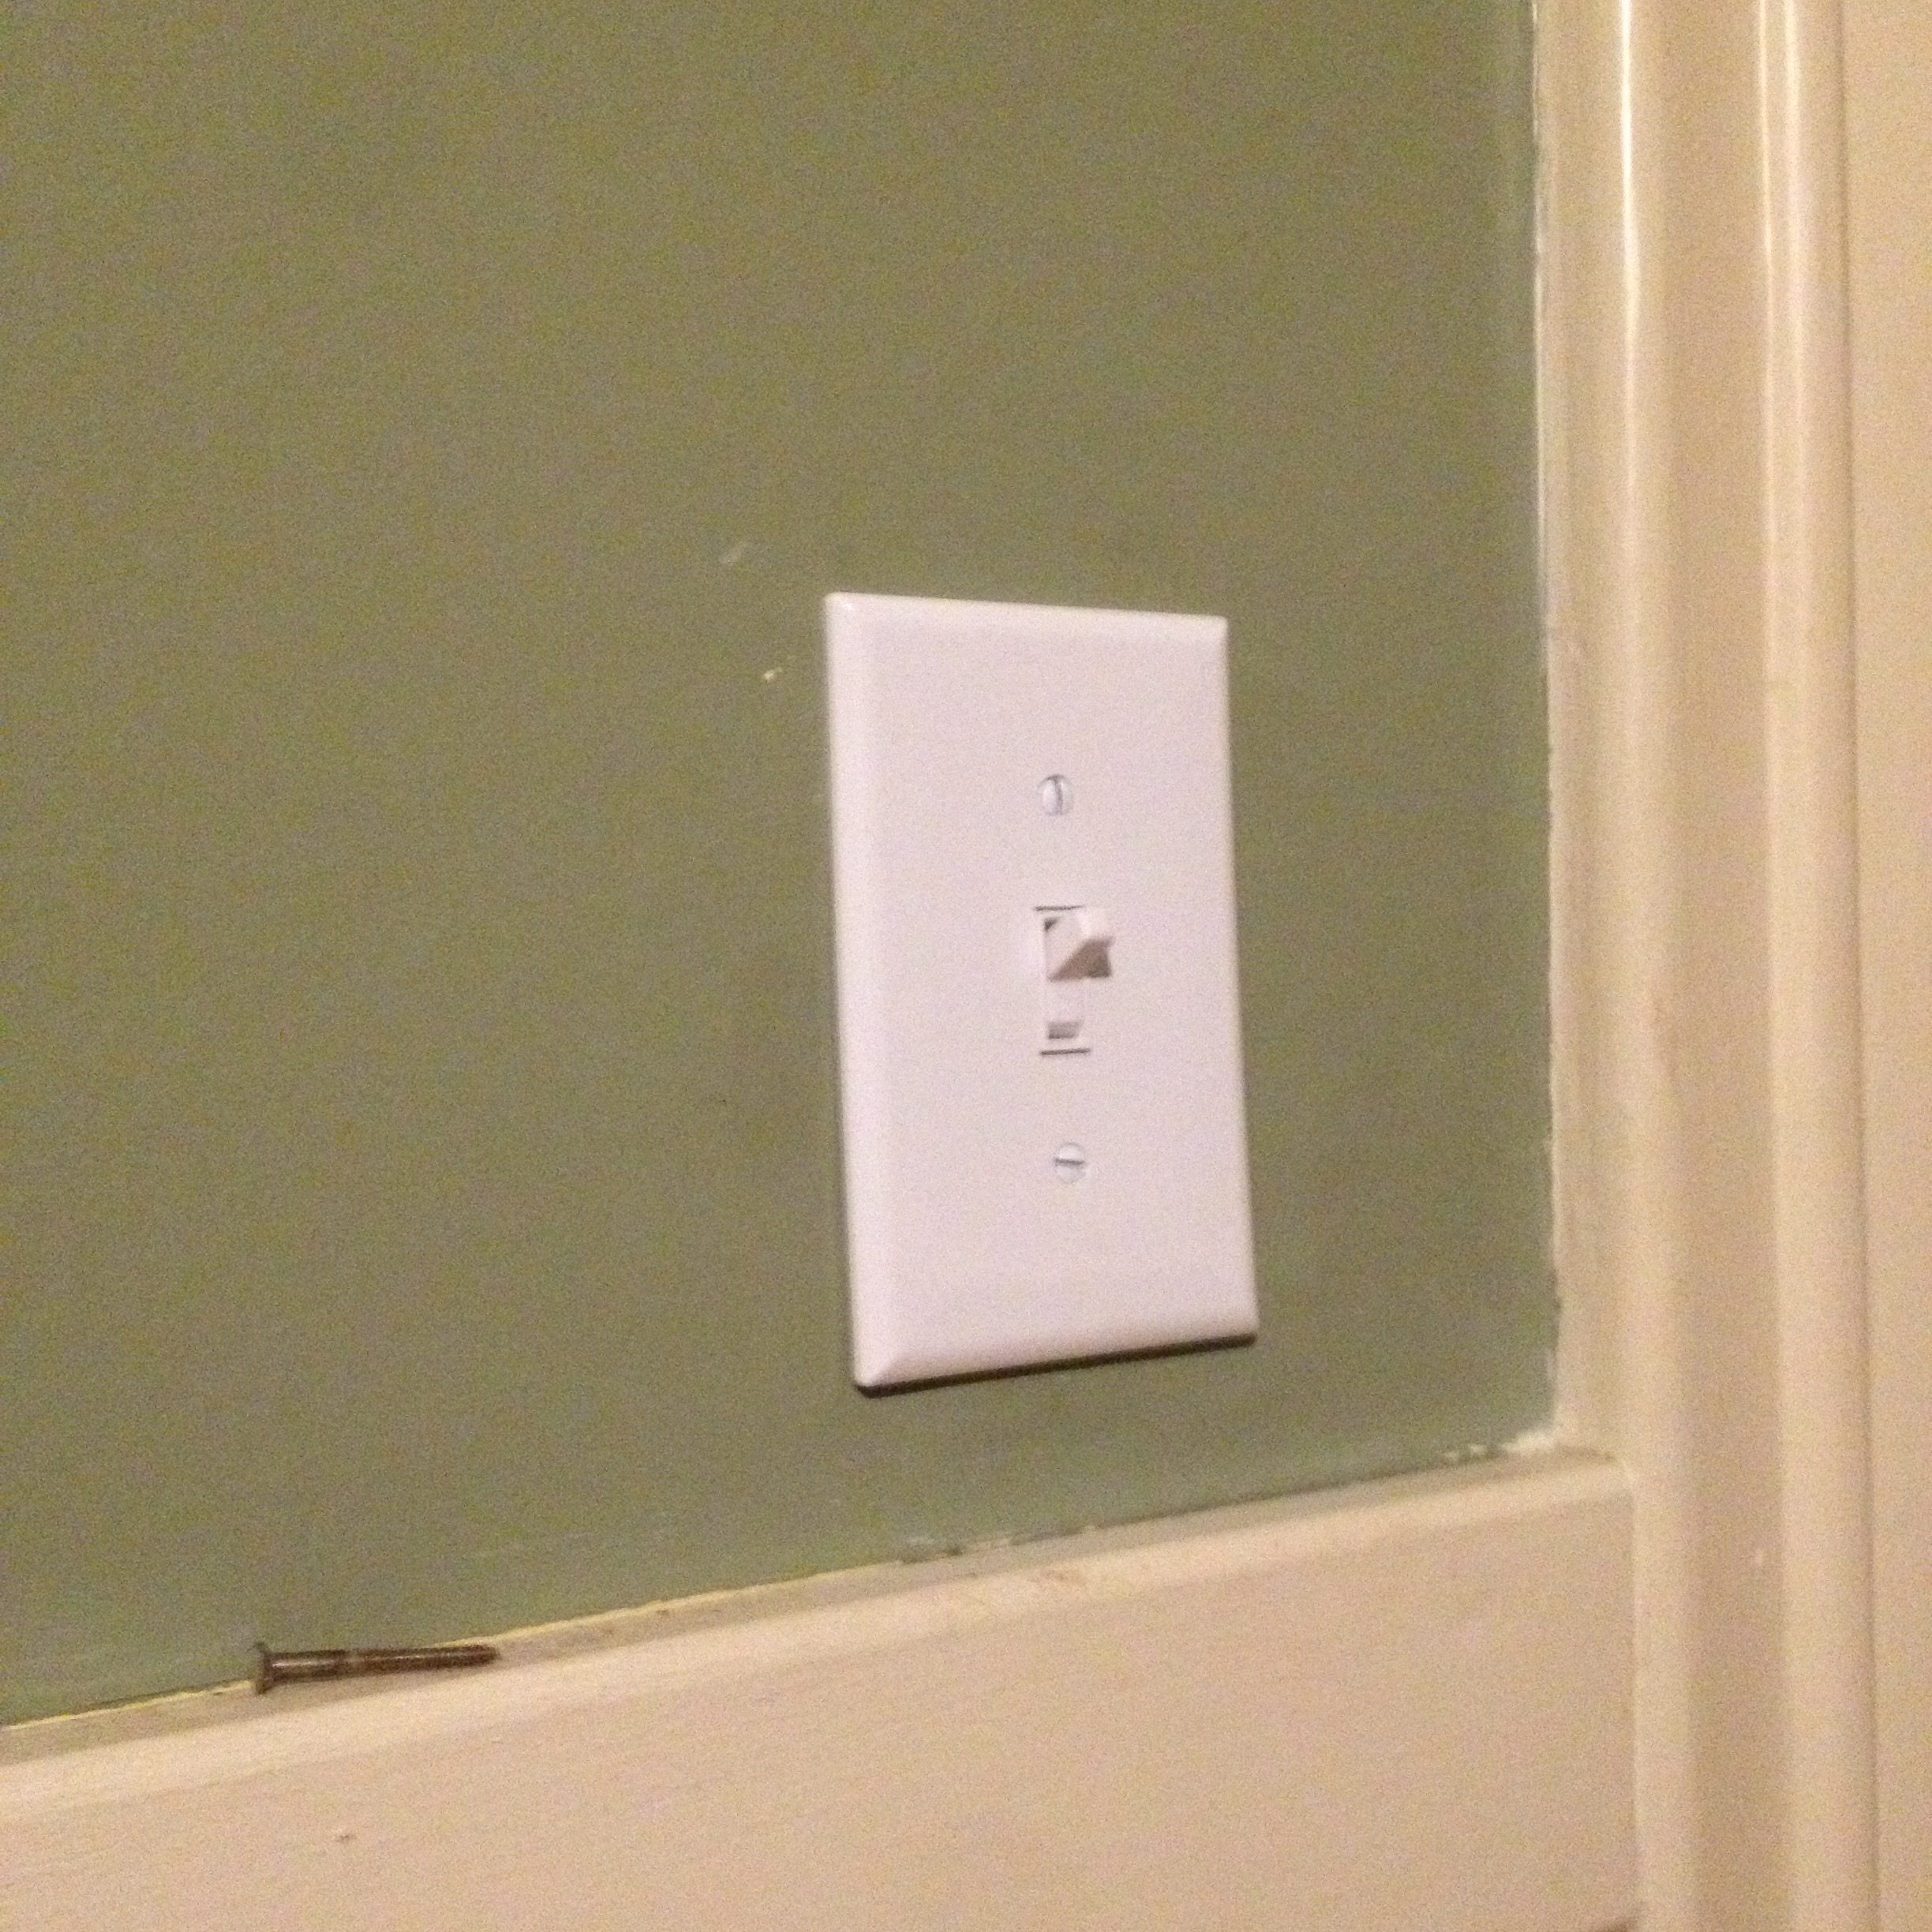 Saving a Bundle By Replacing a Faulty Light Switch – Frugal